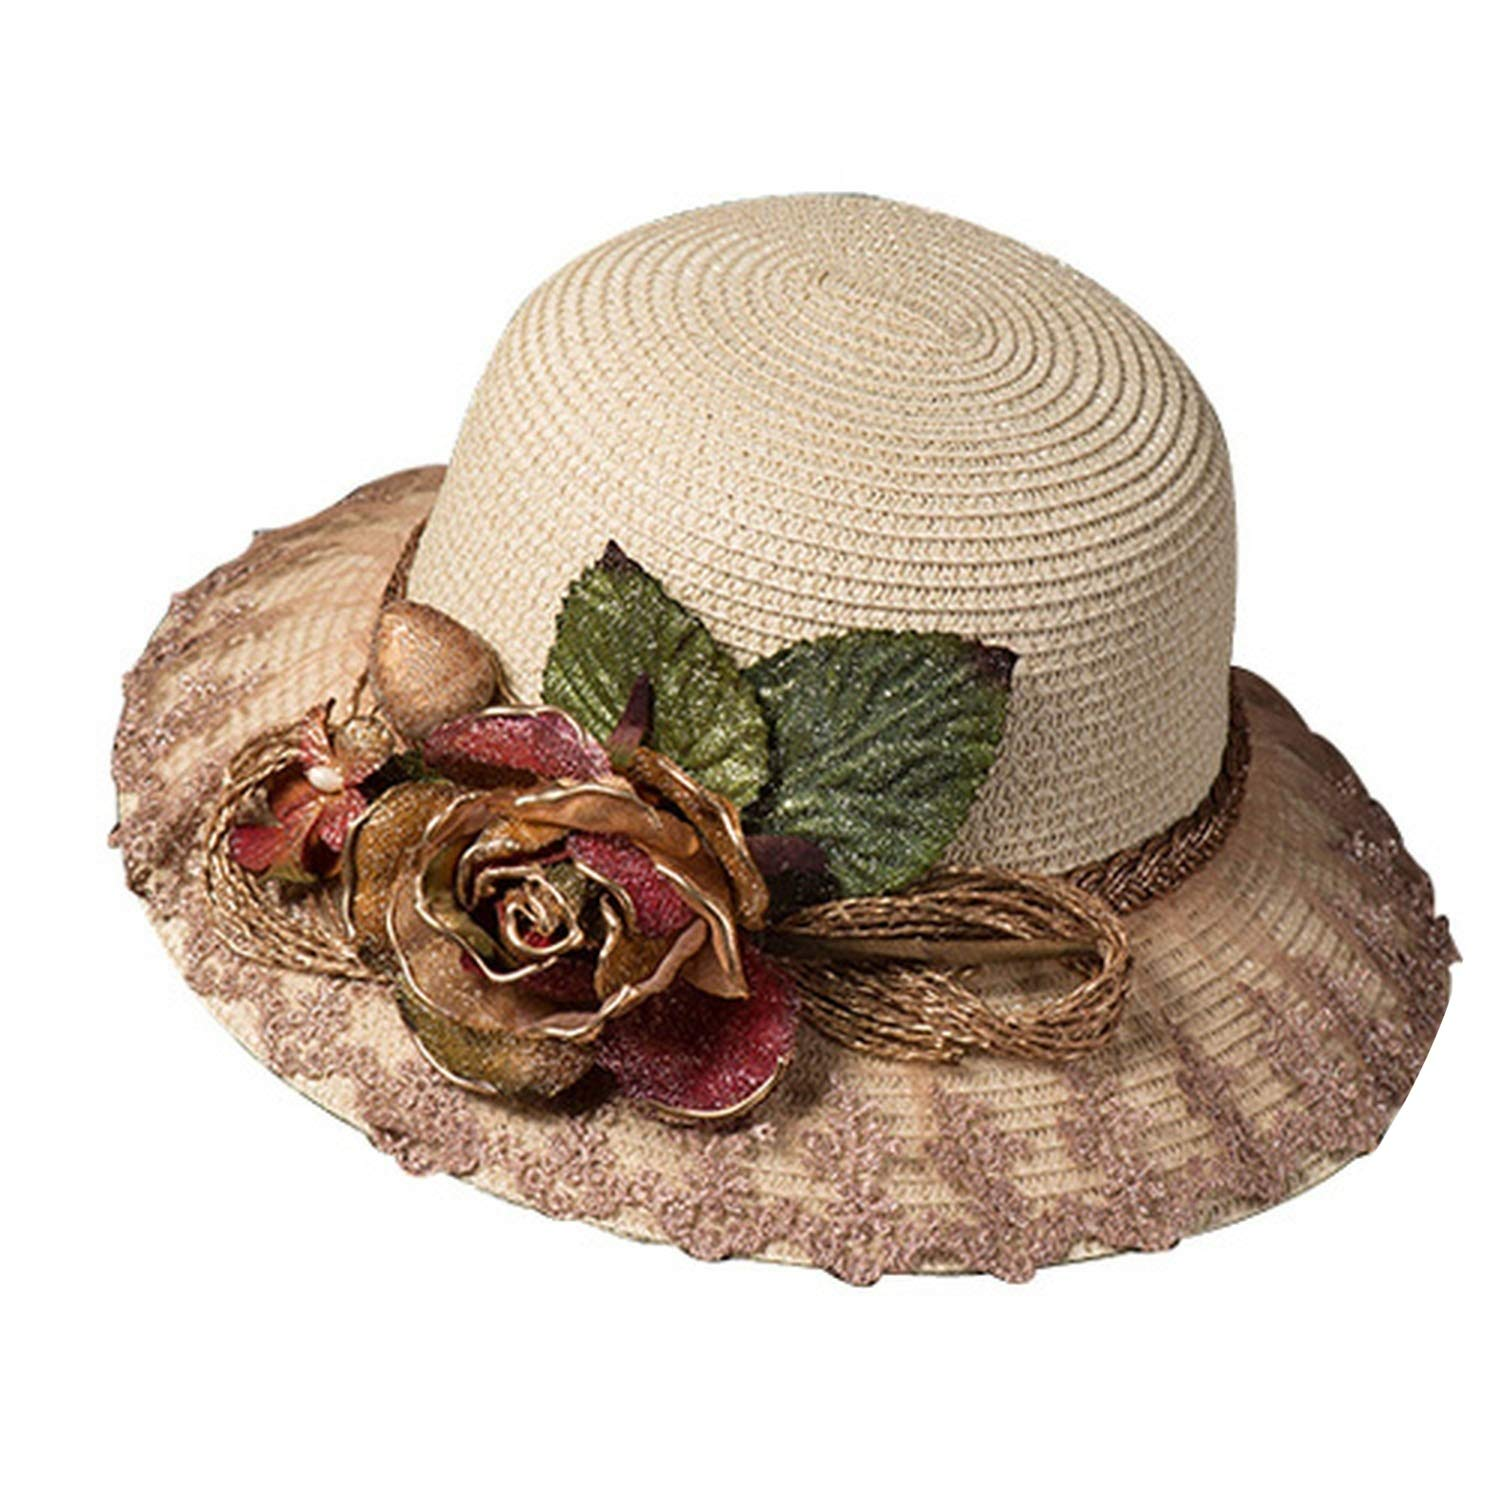 Beige tea party hat Elegant Party Hat for Women Straw Sun Hats with Simulation Flowers Ladies El,